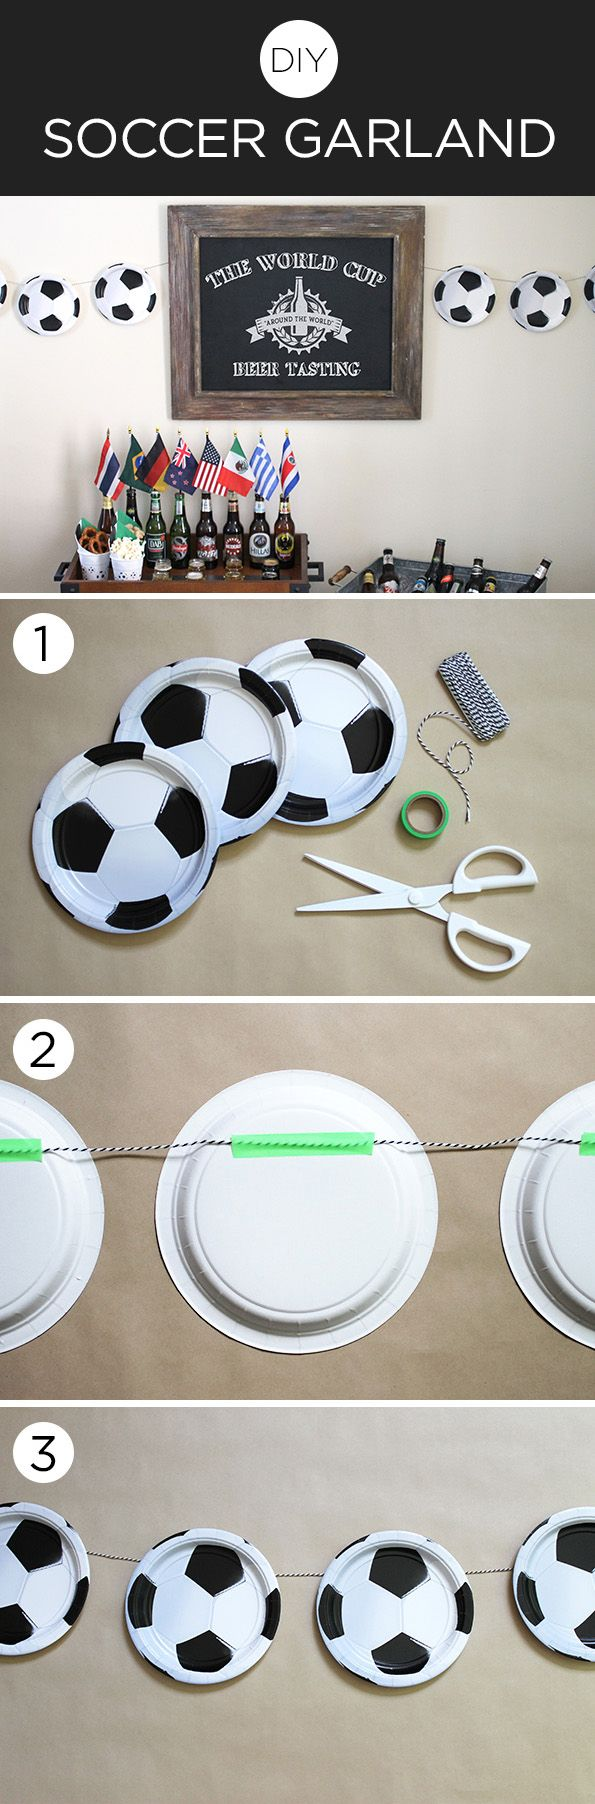 Get in the #WorldCup spirit by making this #DIY soccer ball garland with supplies from @birthdayexpress.